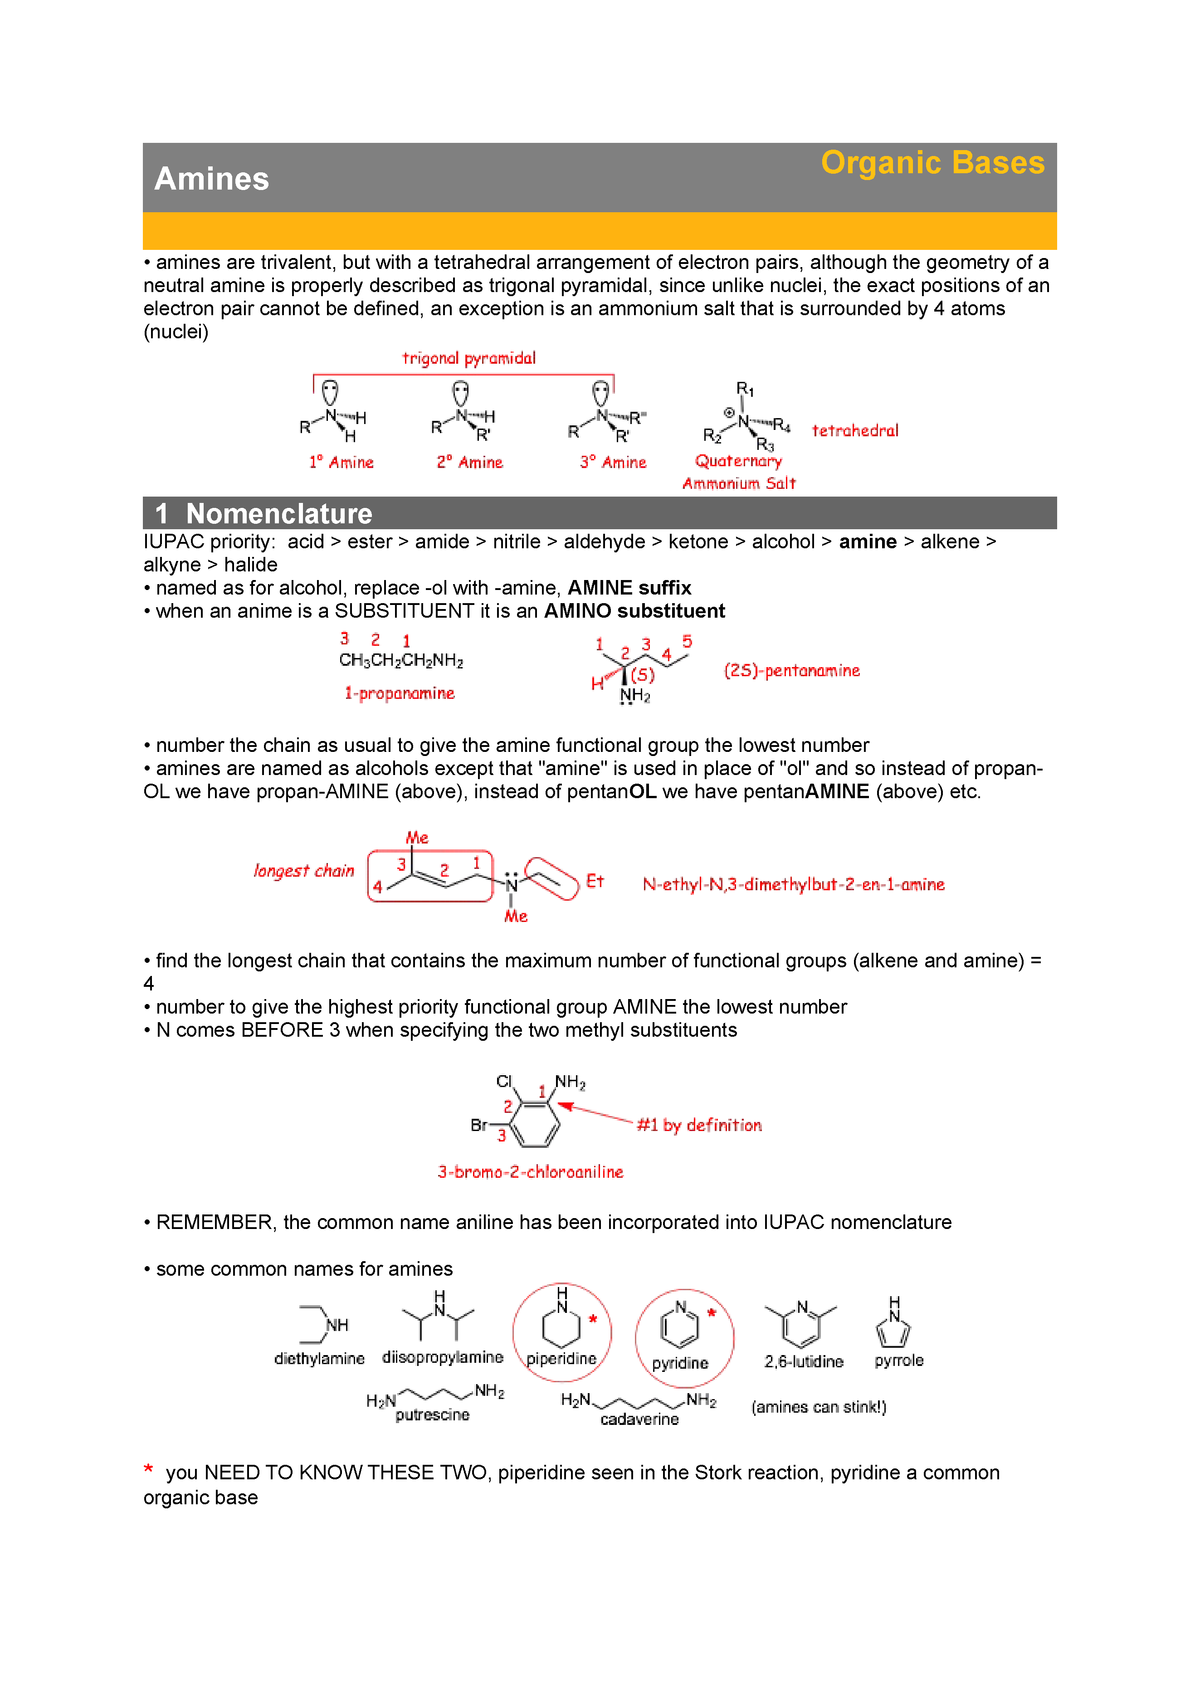 Amines - Organic Bases - Lecture notes 13 - CHM 234 - ASU